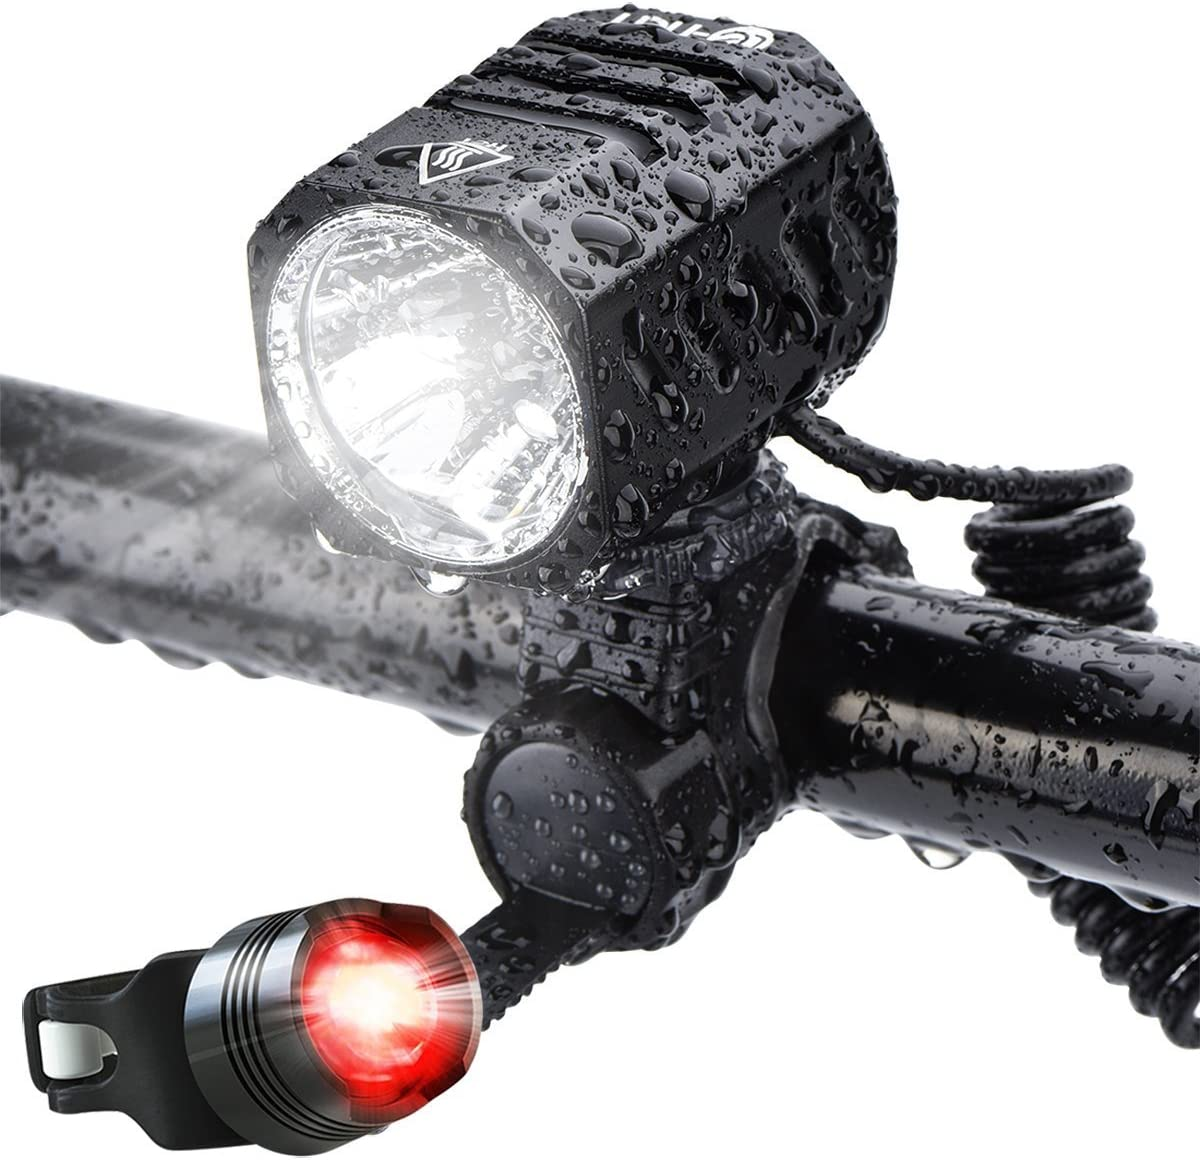 1200 lm Bicycle phare Cree Nestling Rechargeable USB DEL Bike Light Set